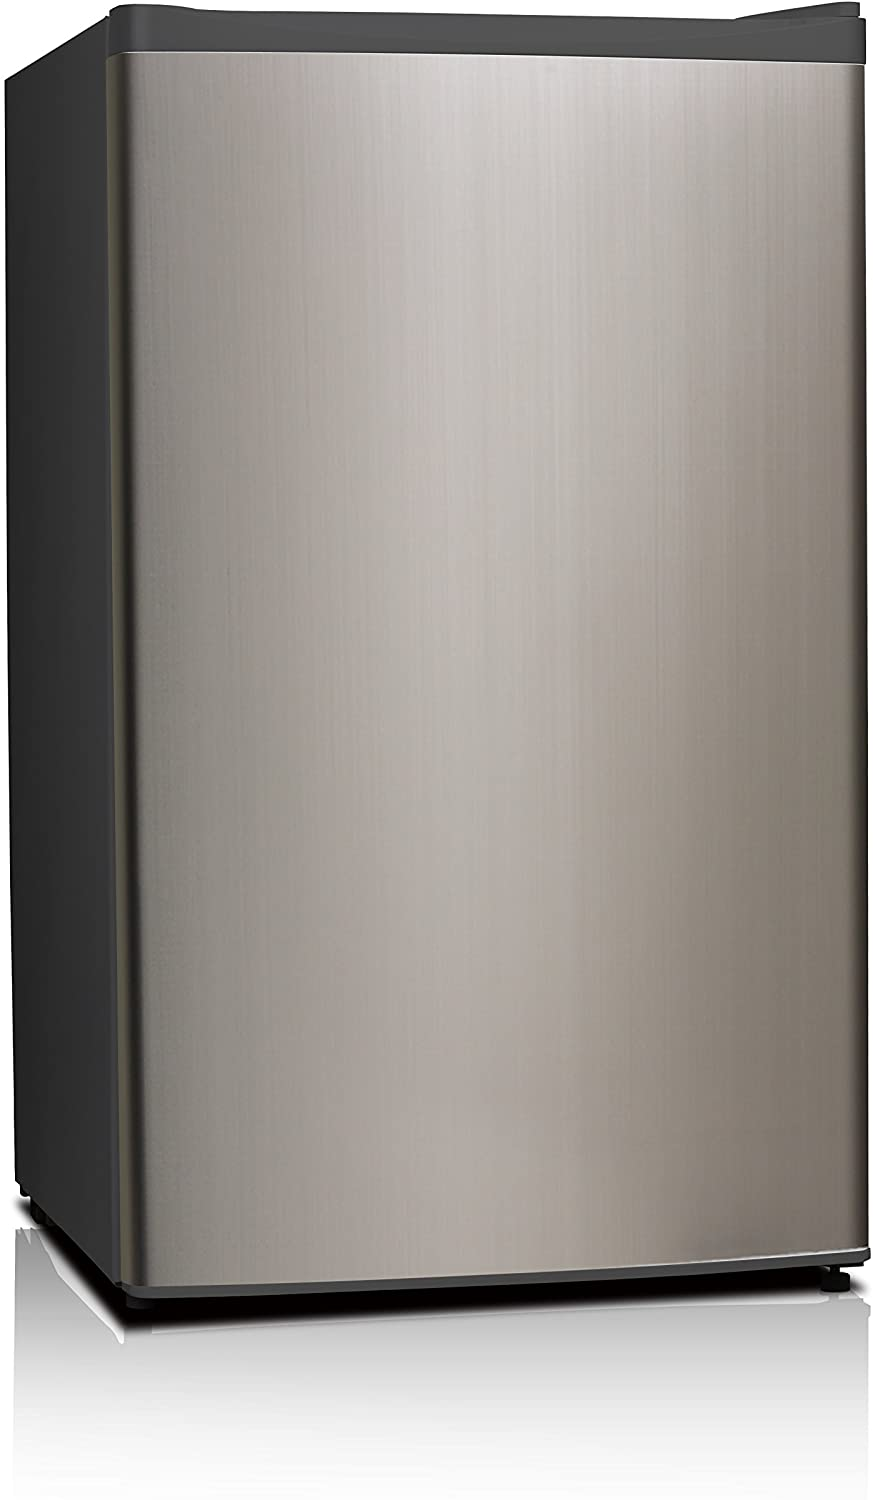 Midea Stainless Steel Refrigerator